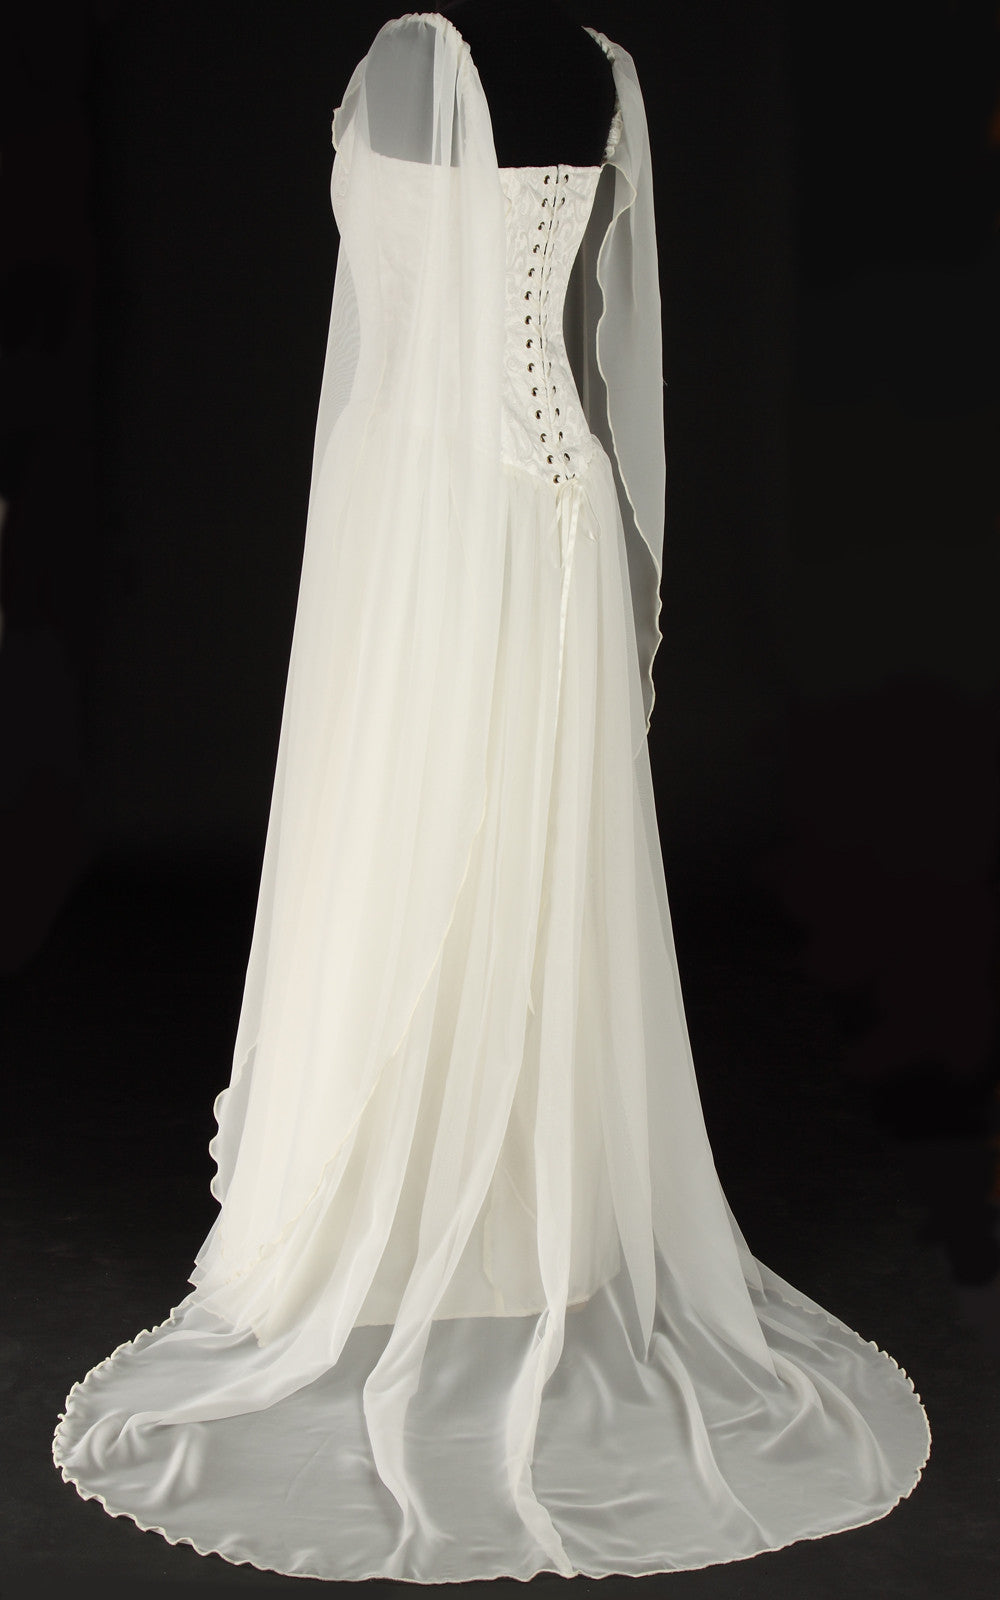 Elven style wedding gown the dark angel for Elven inspired wedding dresses